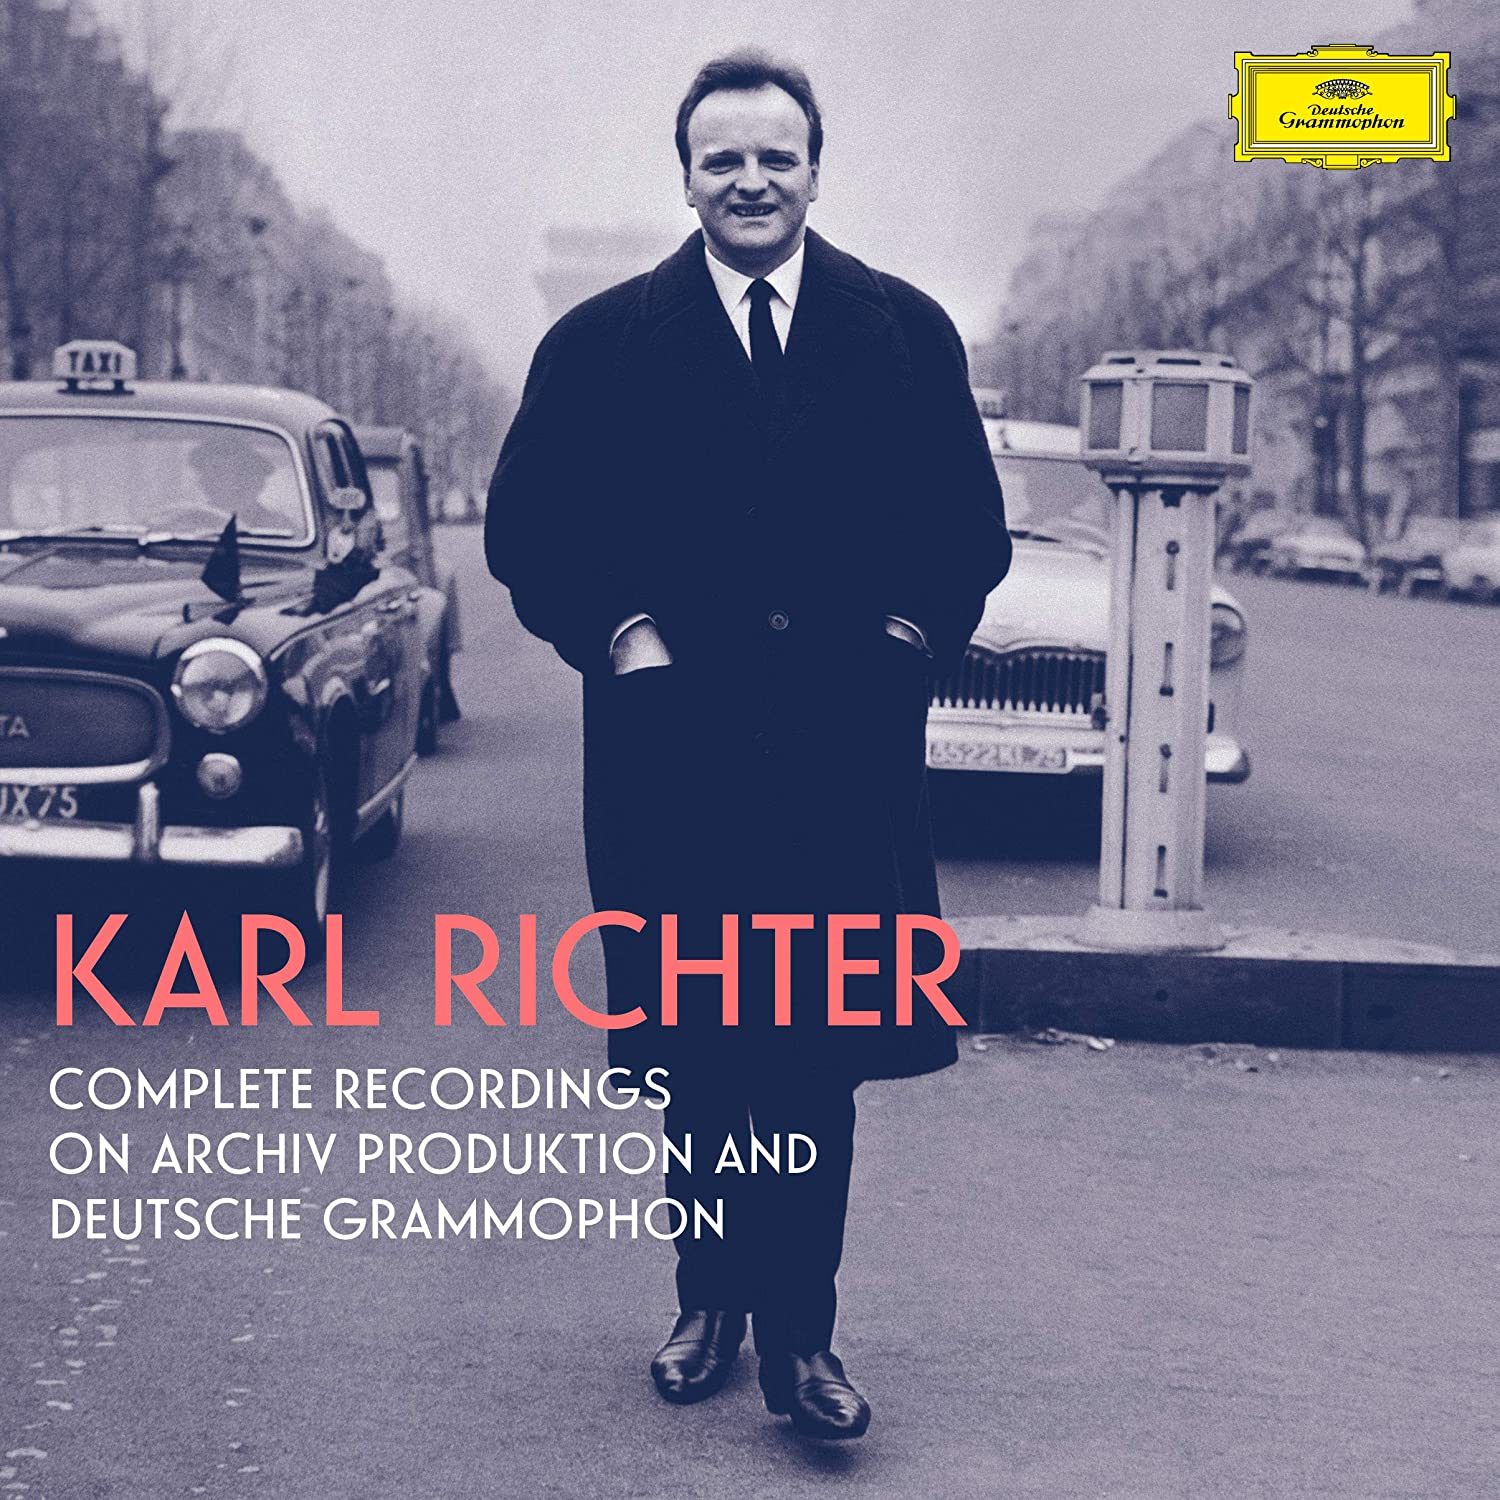 Karl Richter - Complete Recordings On Archiv Produktion And Deutsche Grammophon [97 CD / 3 Blu-ray Box Set]